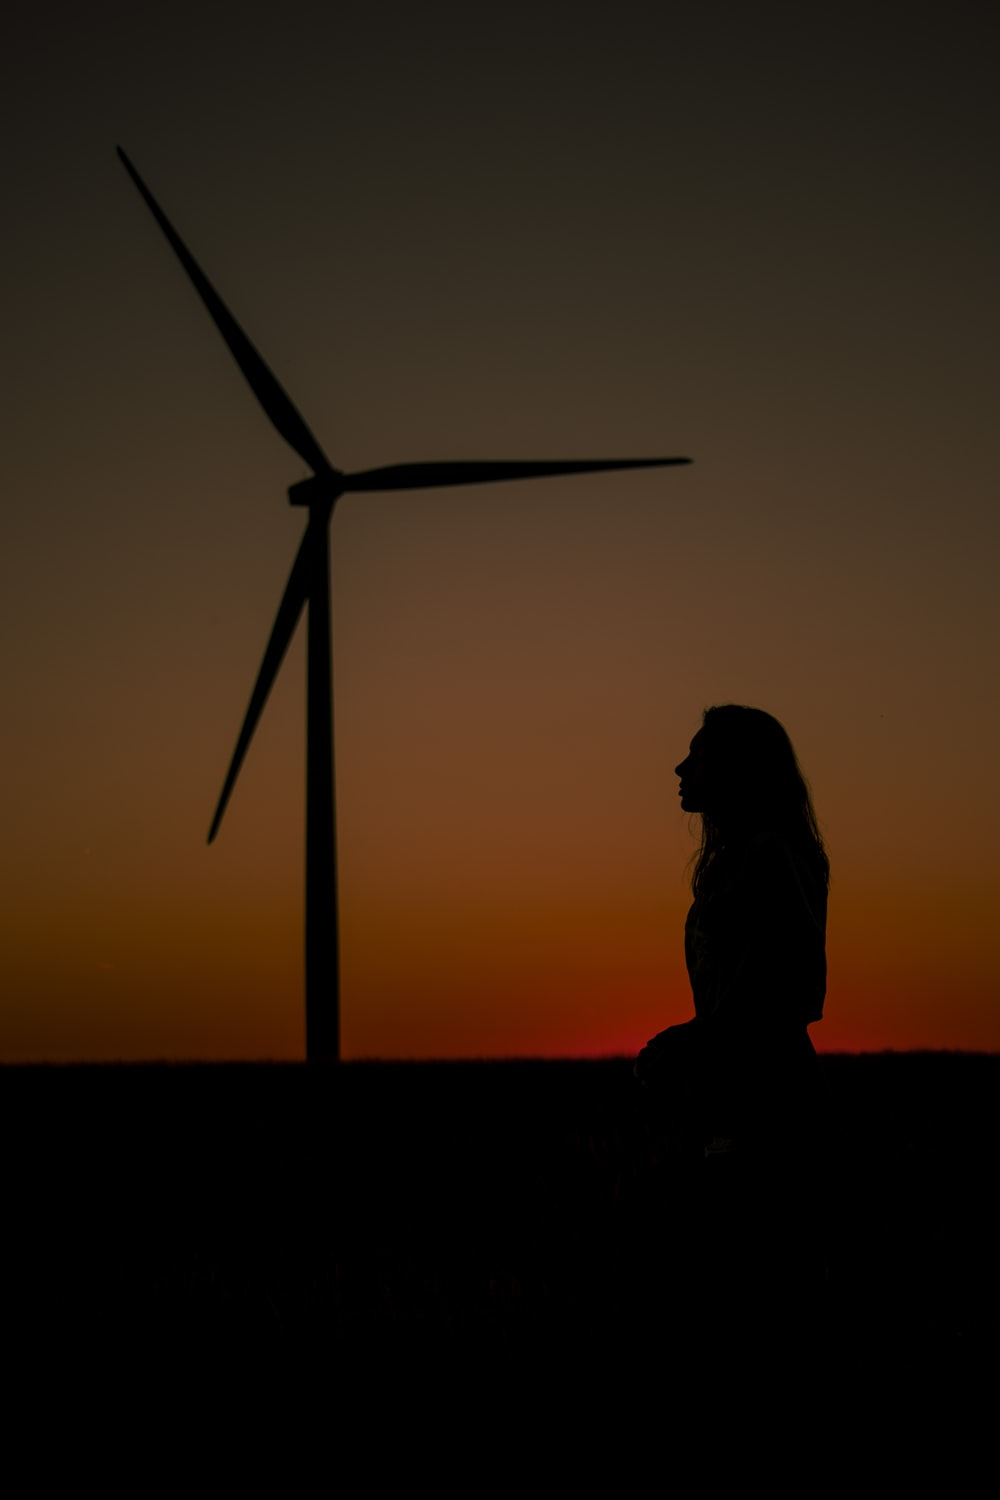 silhouette of person standing near windmill during sunset